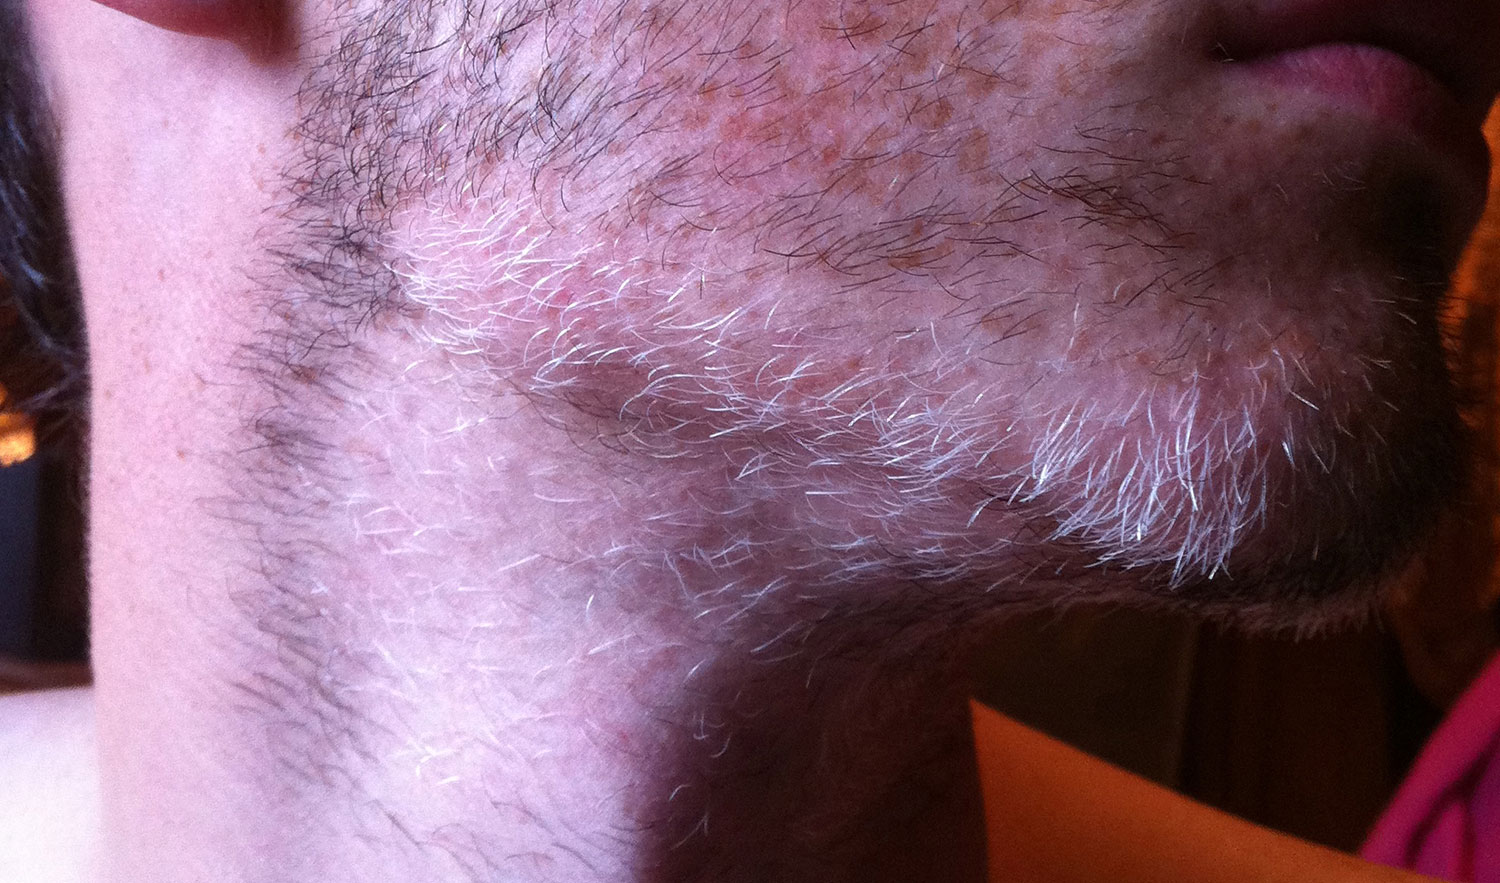 It was worse than this. Going grey at 21 sucked.